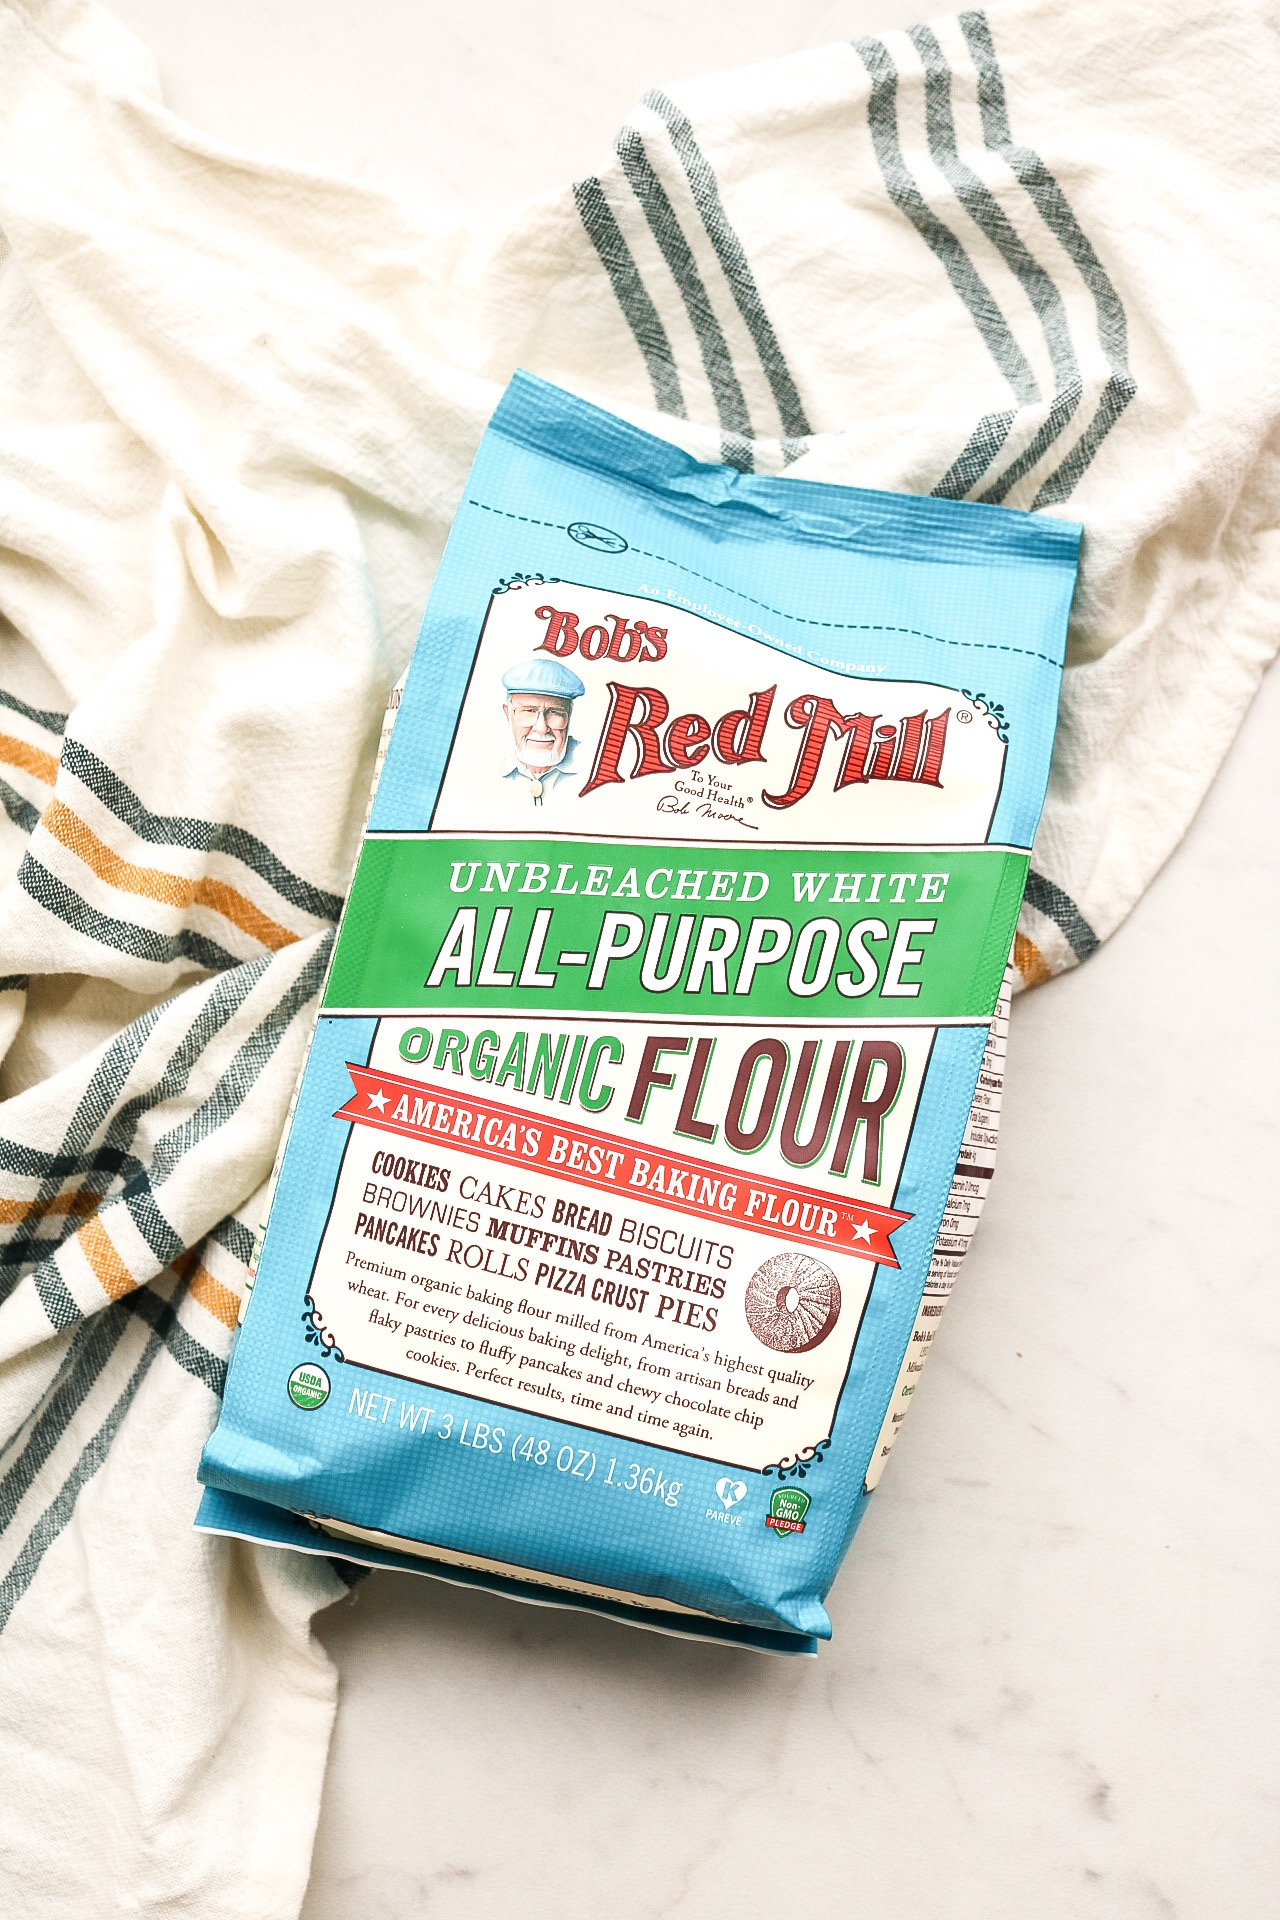 The organic flour that I used! Such a great size and makes all of your baked goods organic :)